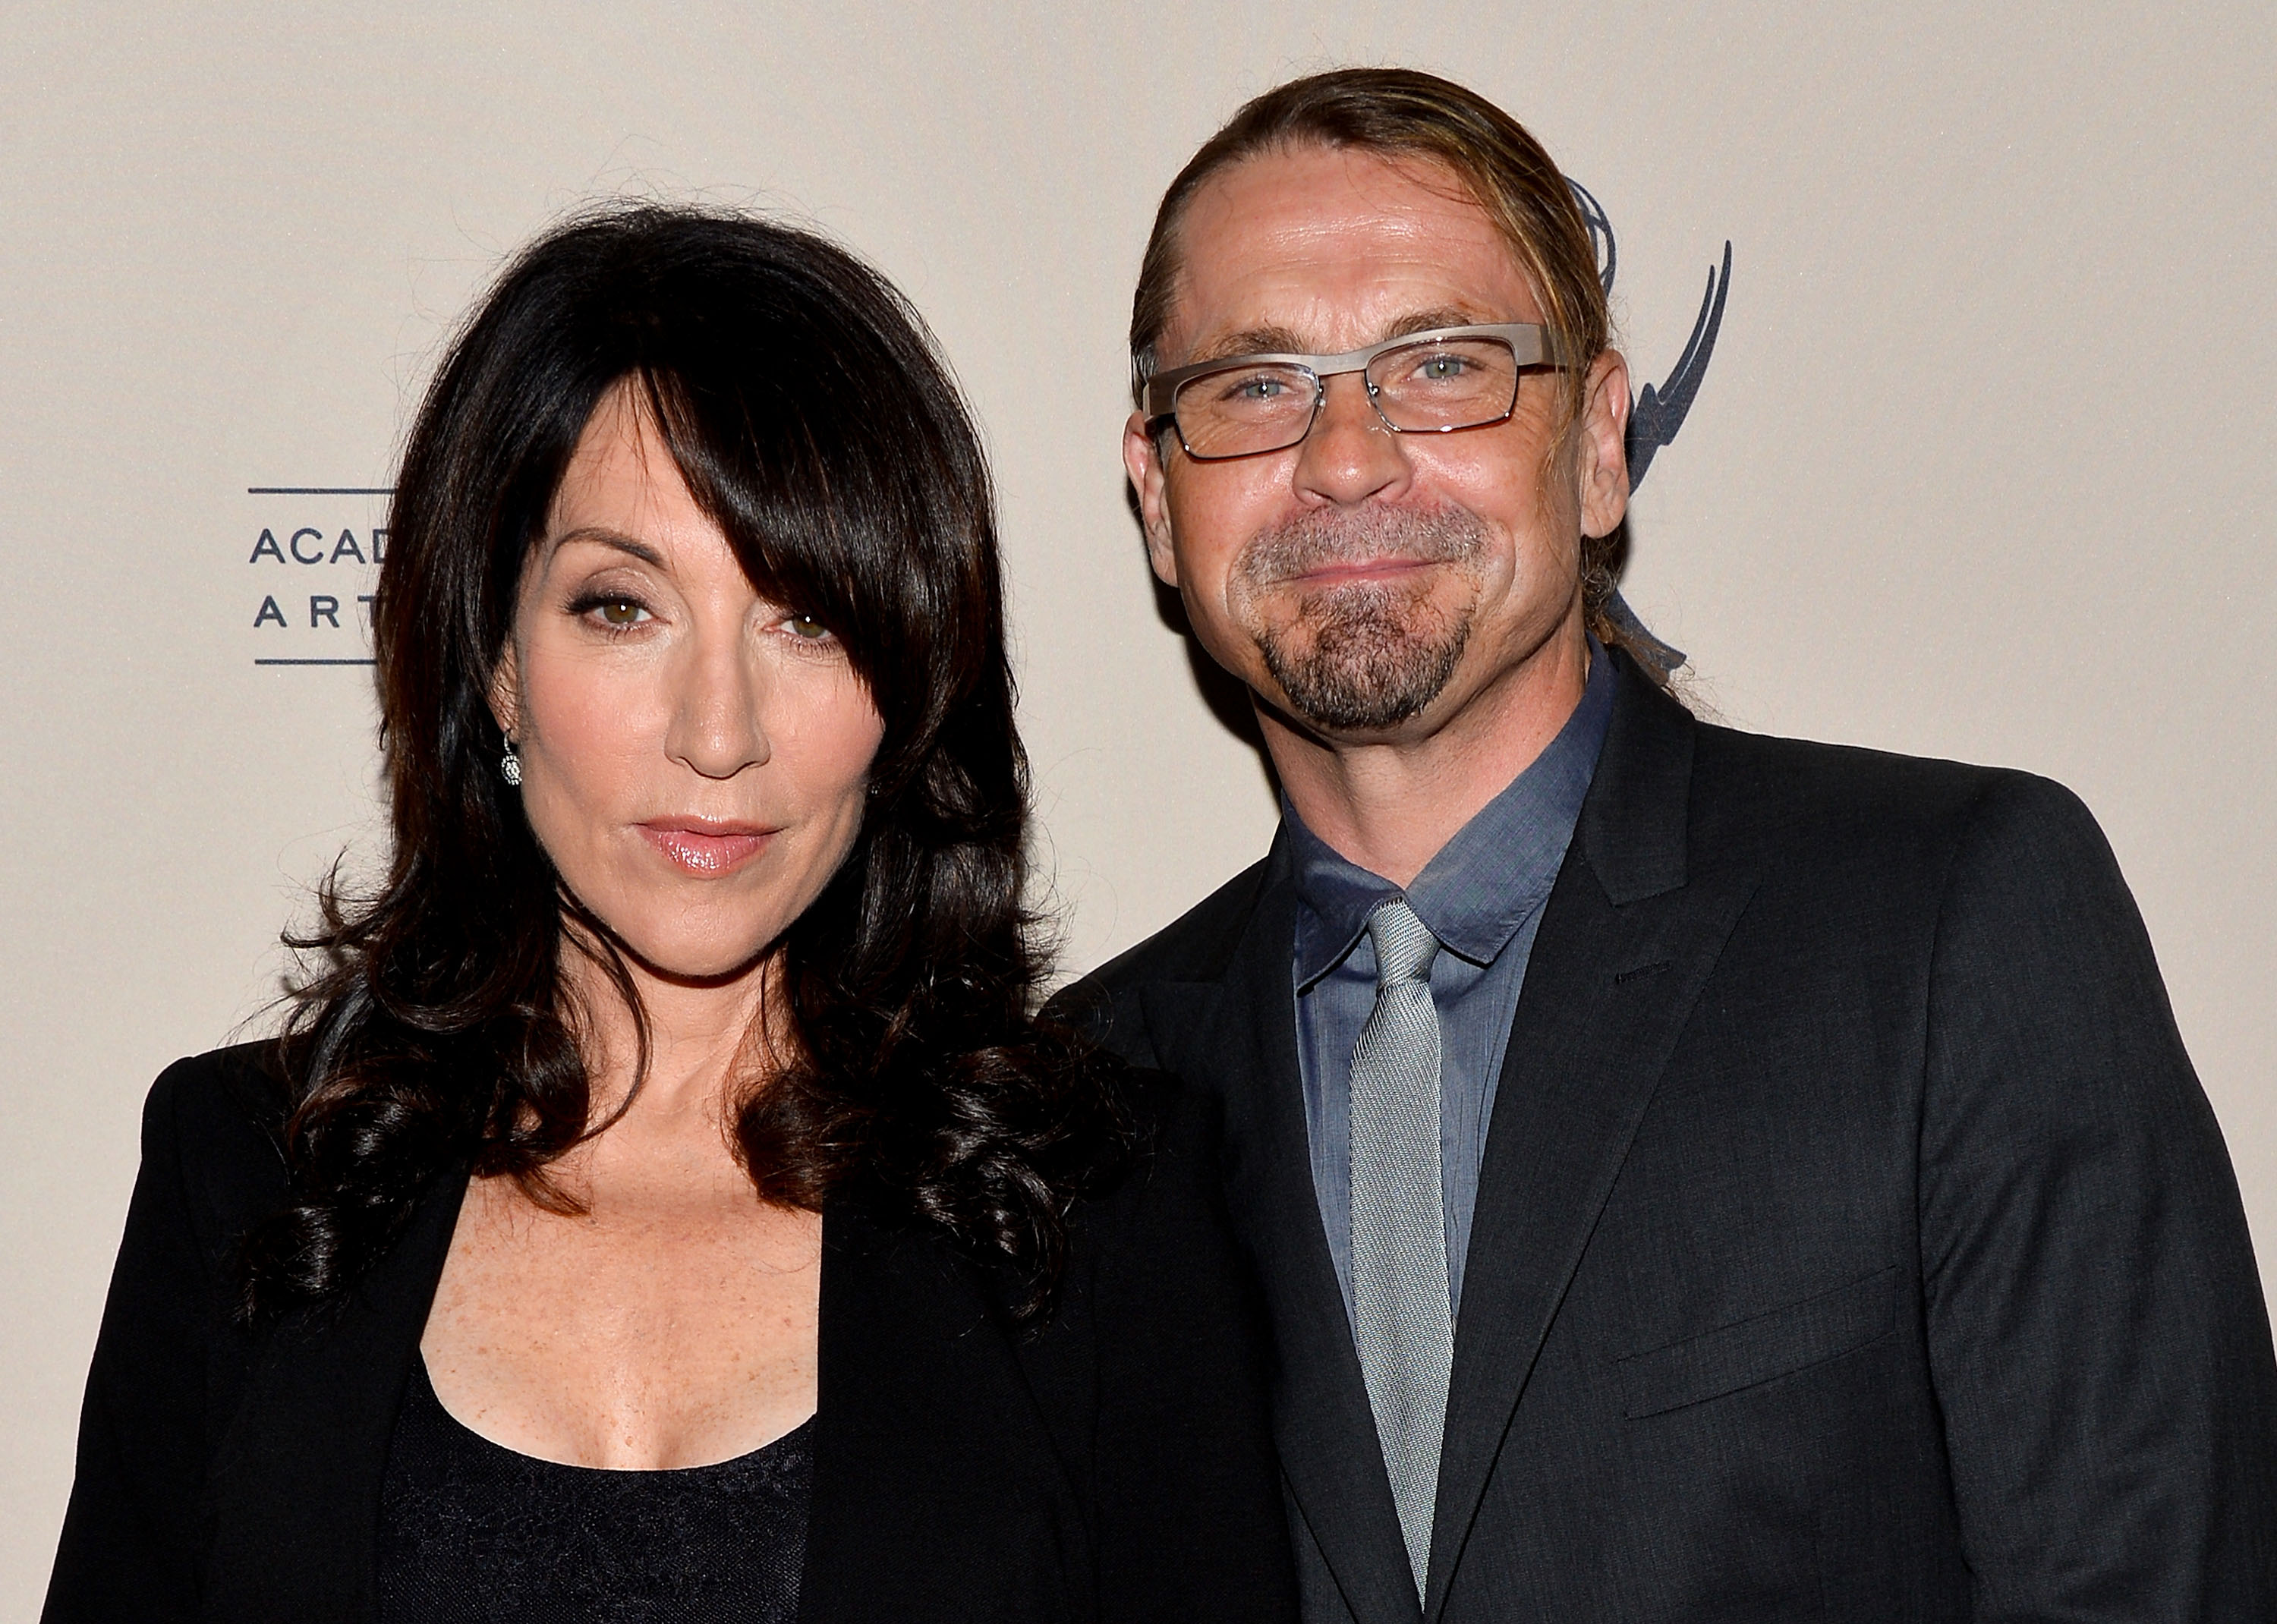 Actress Katey Sagal and Sons of Anarchy series creator Kurt Sutter.